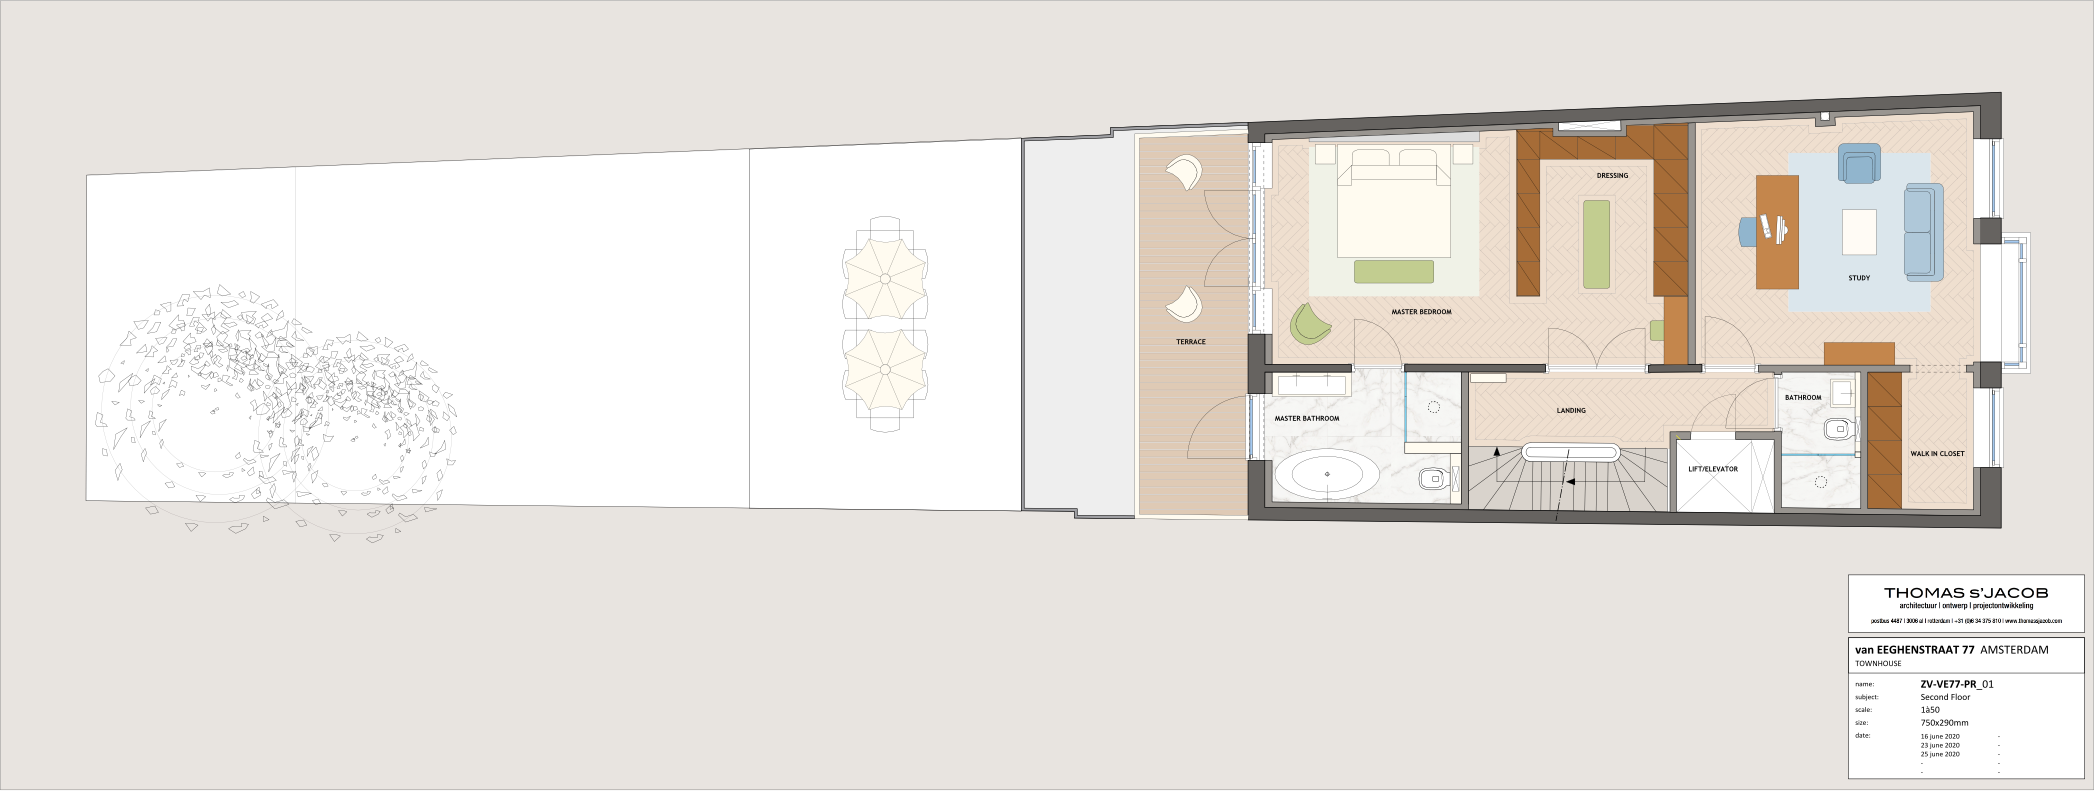 floor plan ven eeghenstraat 77 second floor